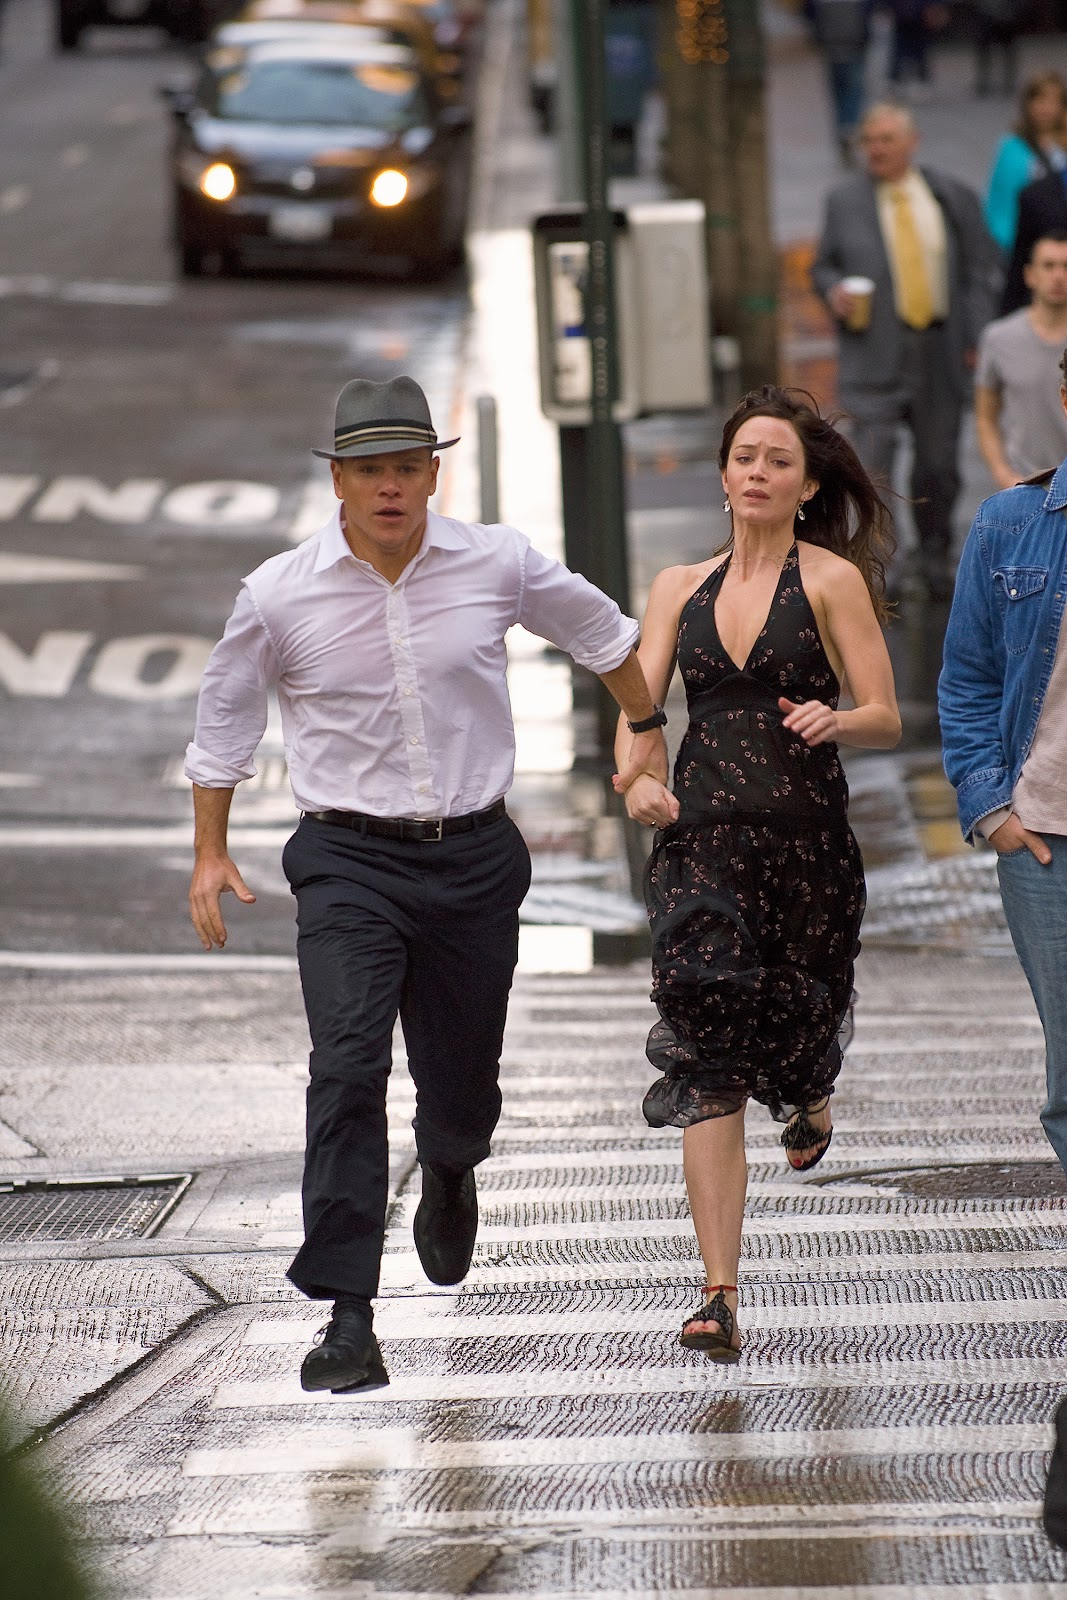 http://1.bp.blogspot.com/-IgaS4btZgSA/T8gnNBwFP4I/AAAAAAAACbo/mBCCI2iwNhQ/s1600/Emily+Blunt+and+Matt+Damon+in+The+Adjustment+Bureau.jpg